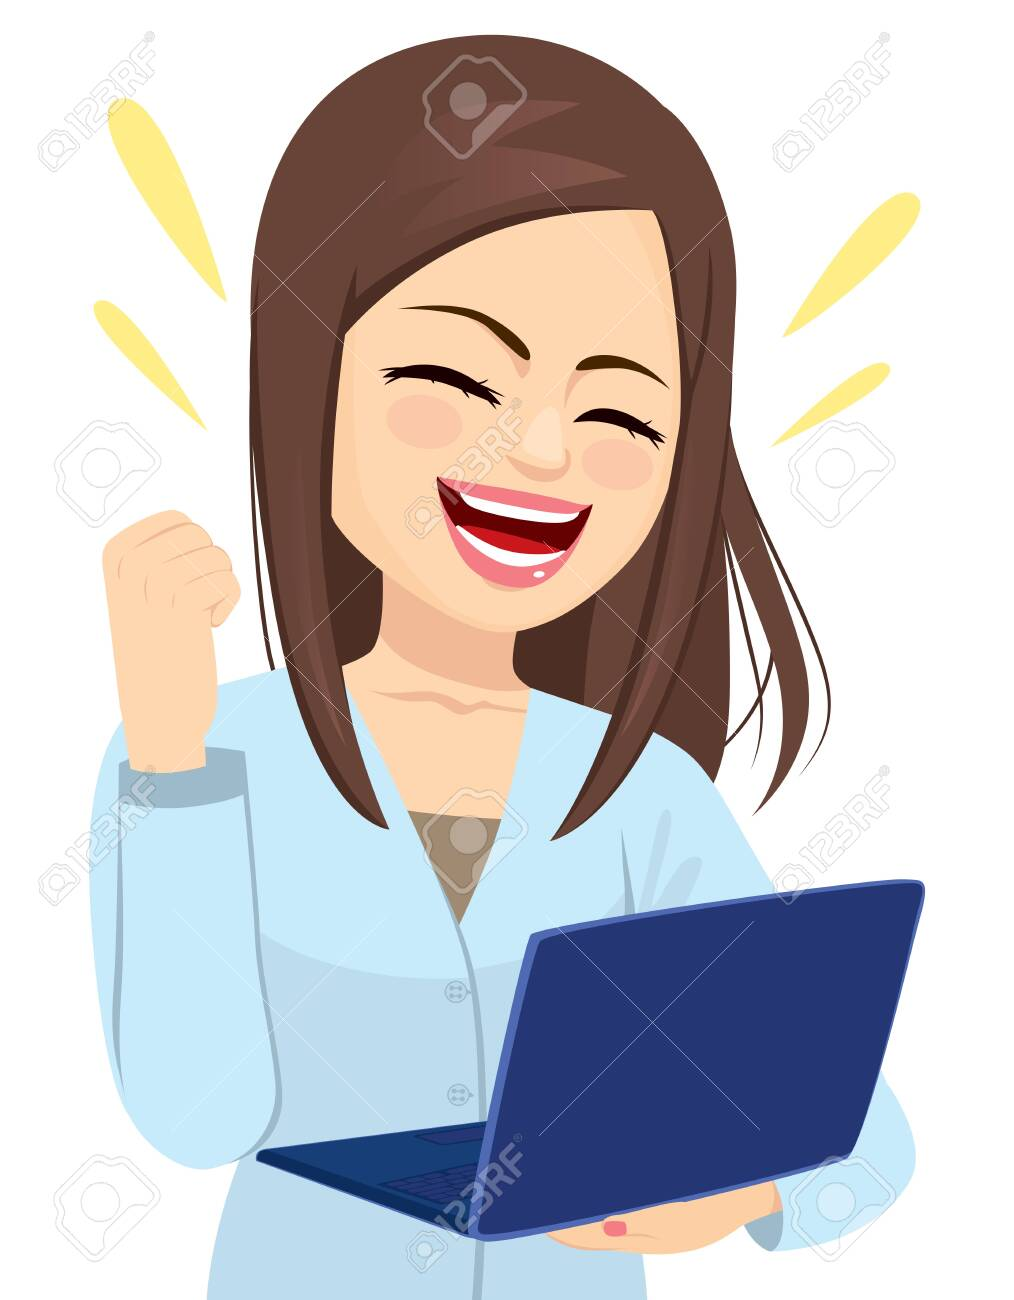 Successful happy businesswoman holding laptop cheering with fist up celebrating - 126937225